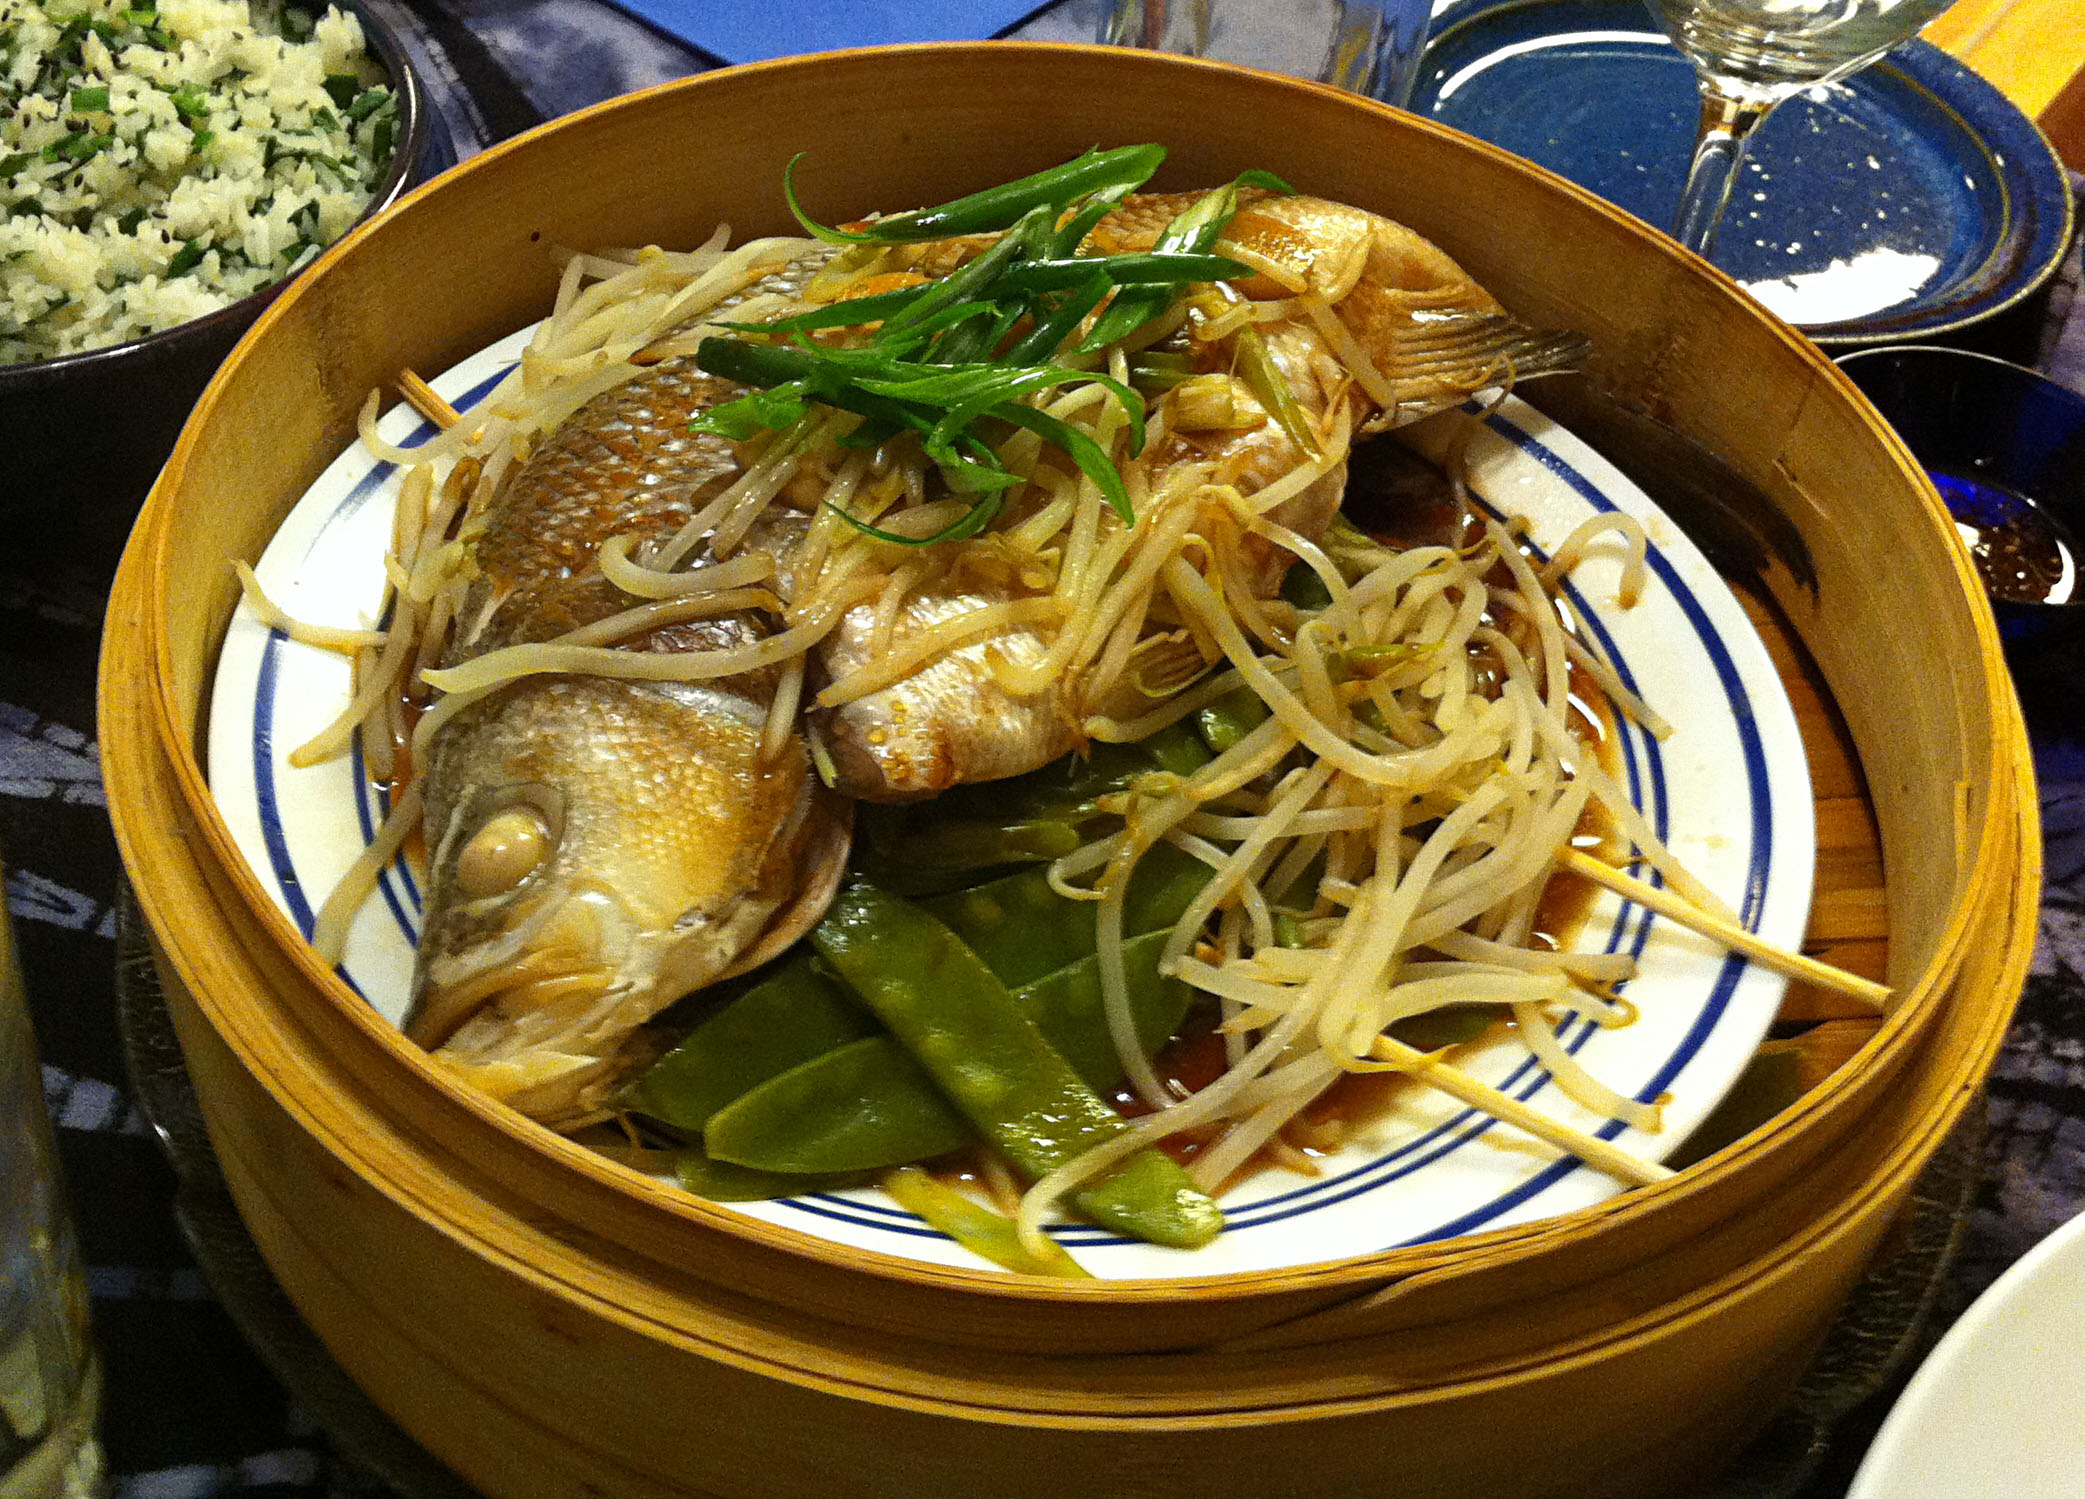 Karl s chinese whole steamed fish ii jabberwocky stew for Steamed whole fish